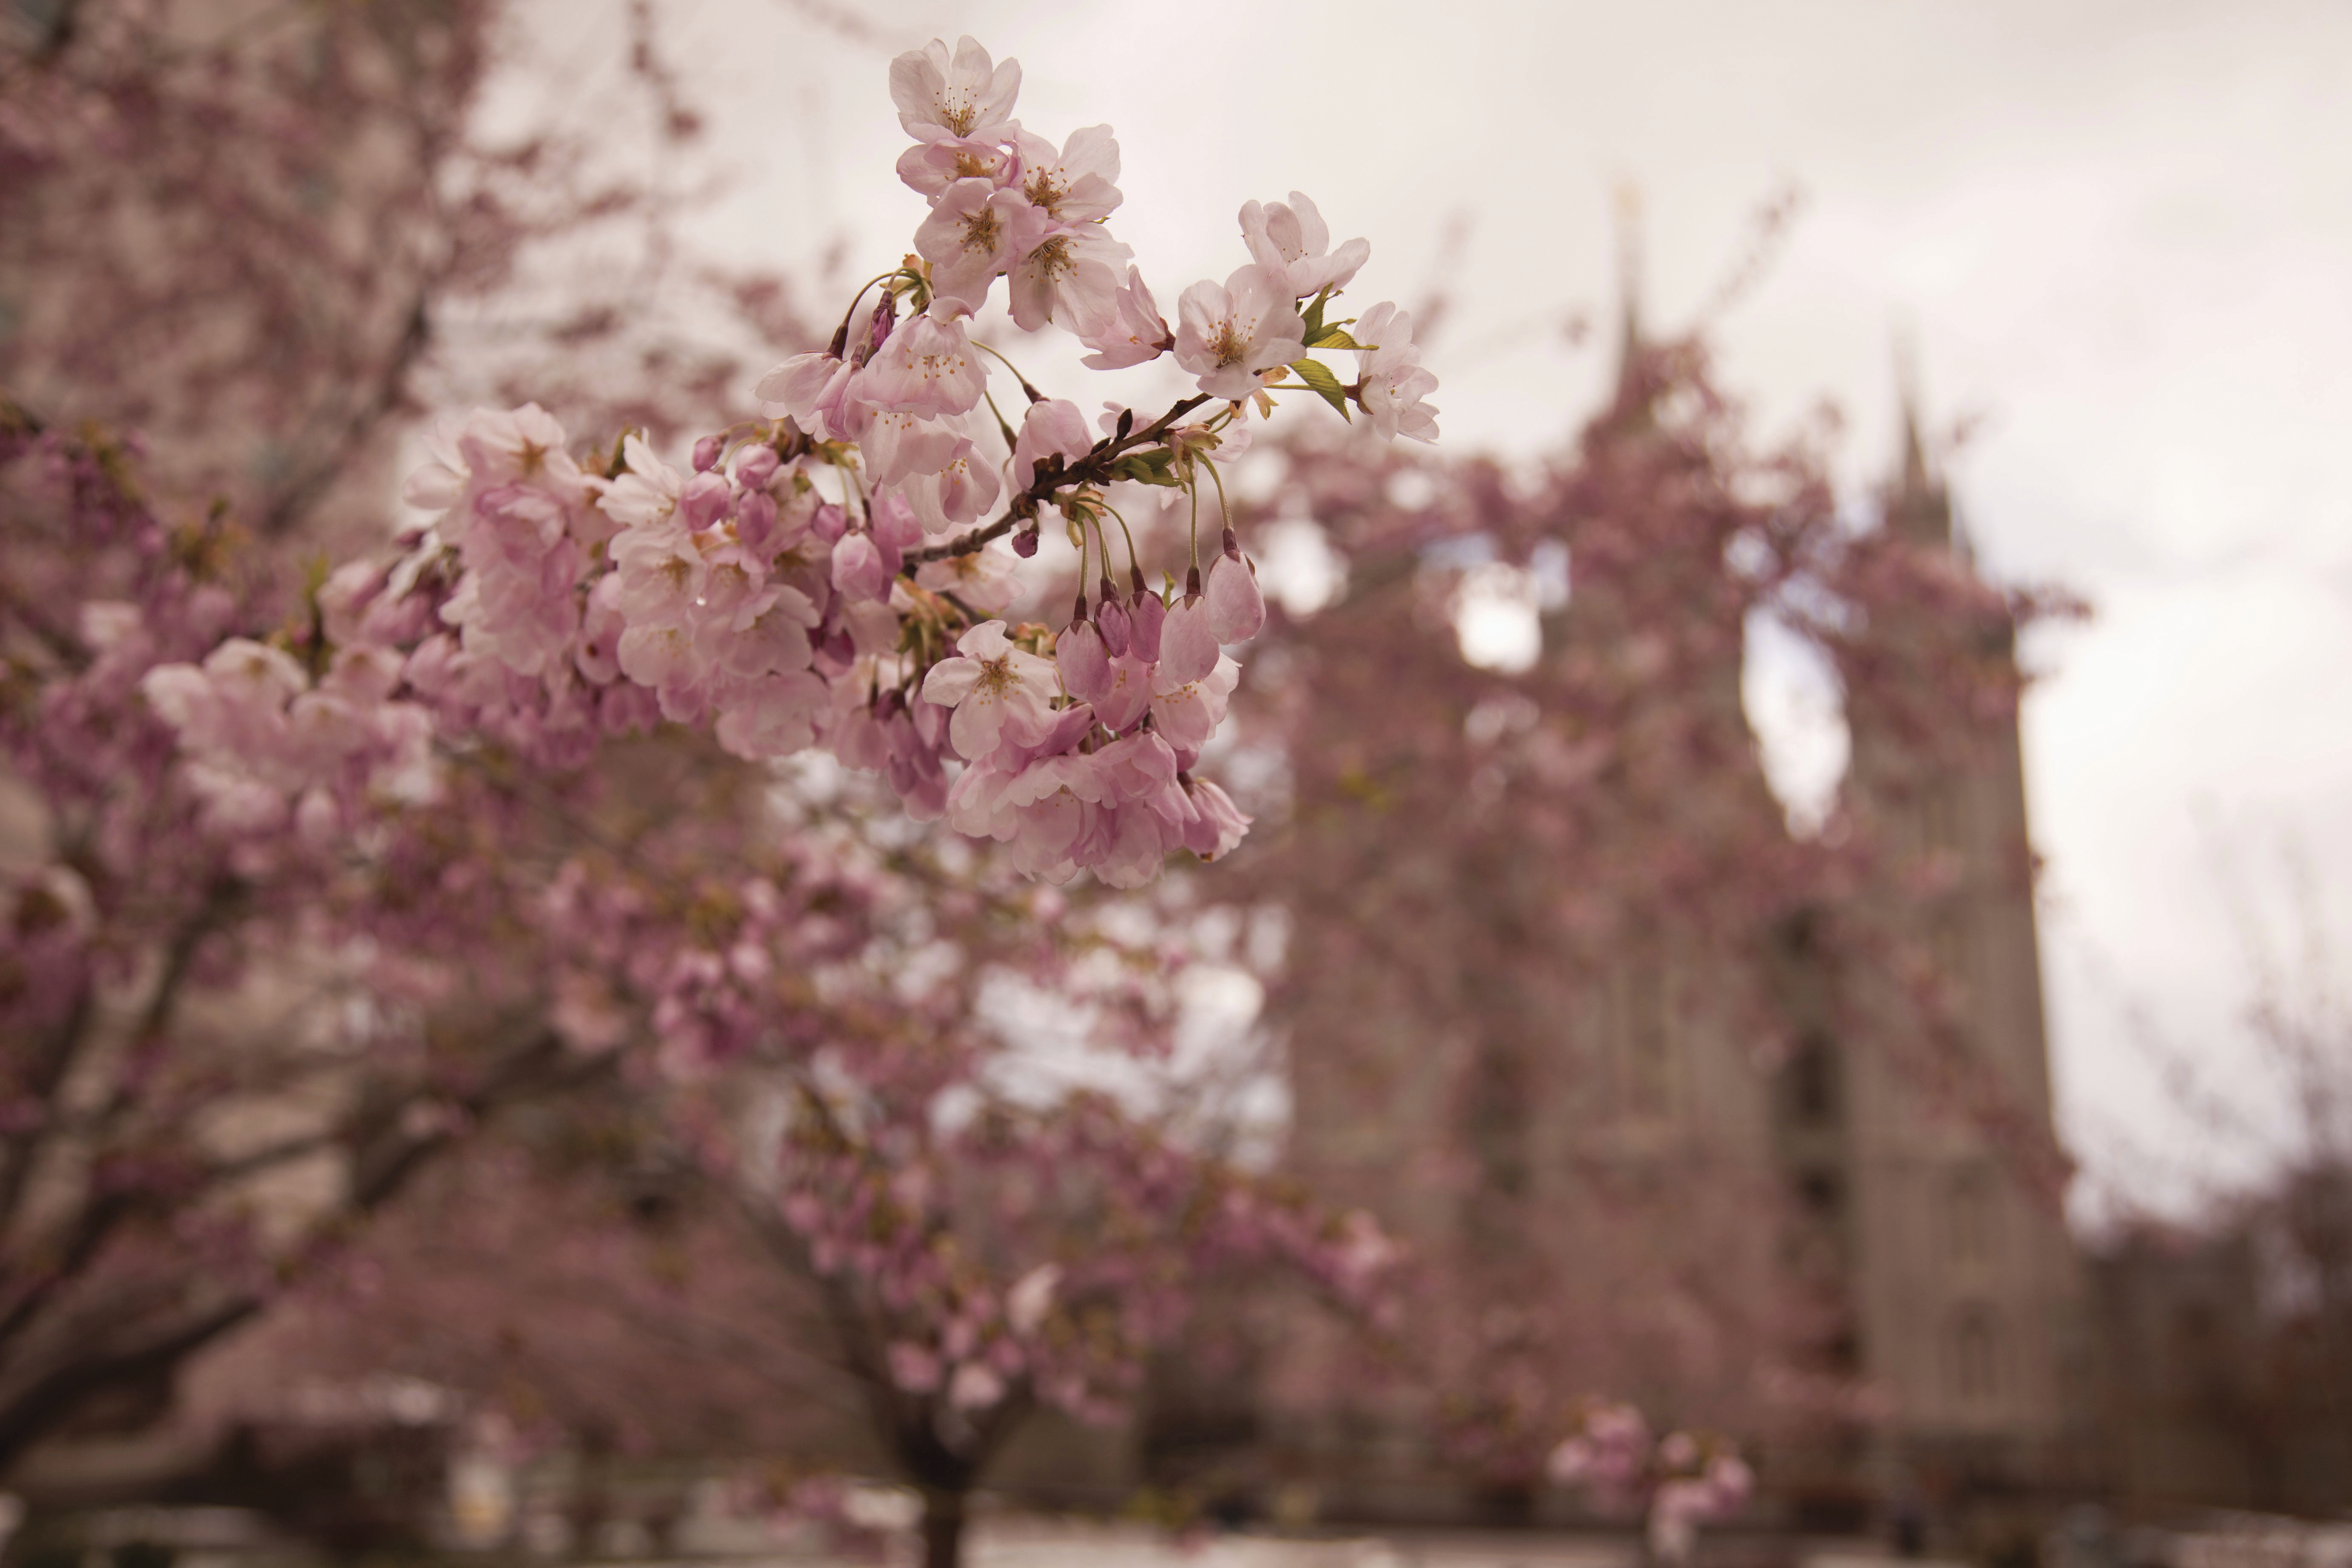 Tree blossoms during spring in front of the blurred Salt Lake Temple.